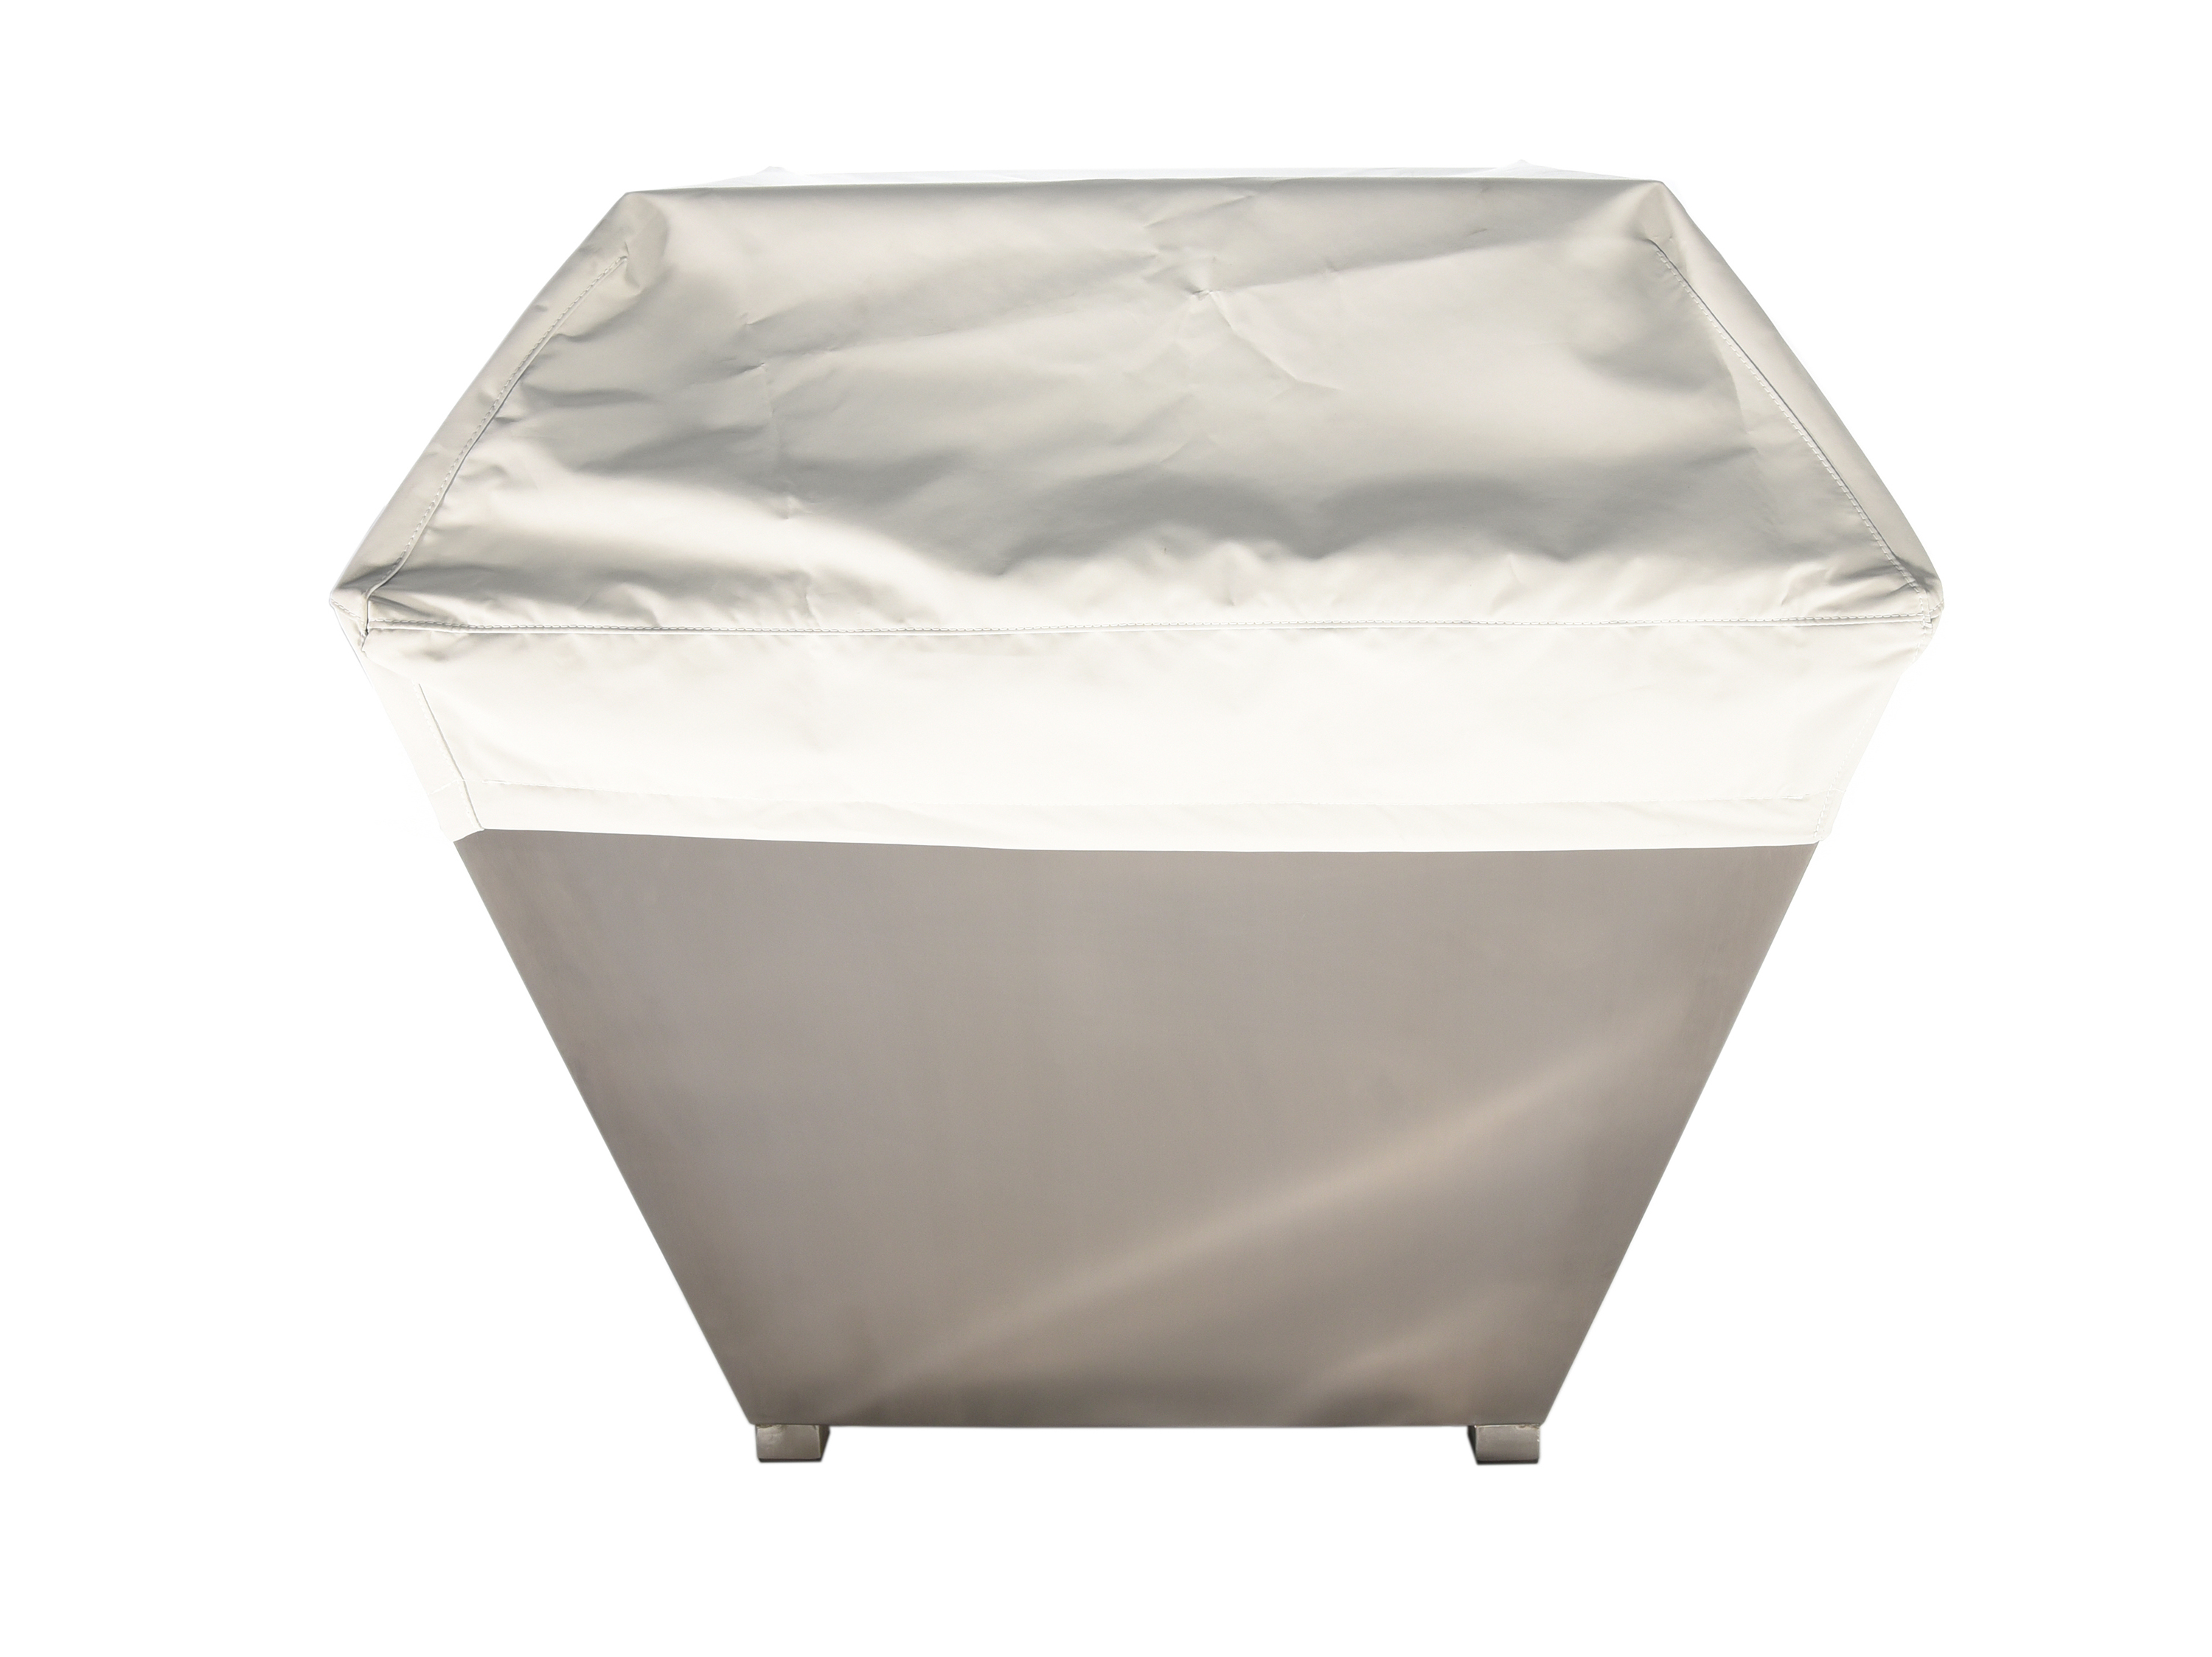 Square gas FirePit with waterproof cover